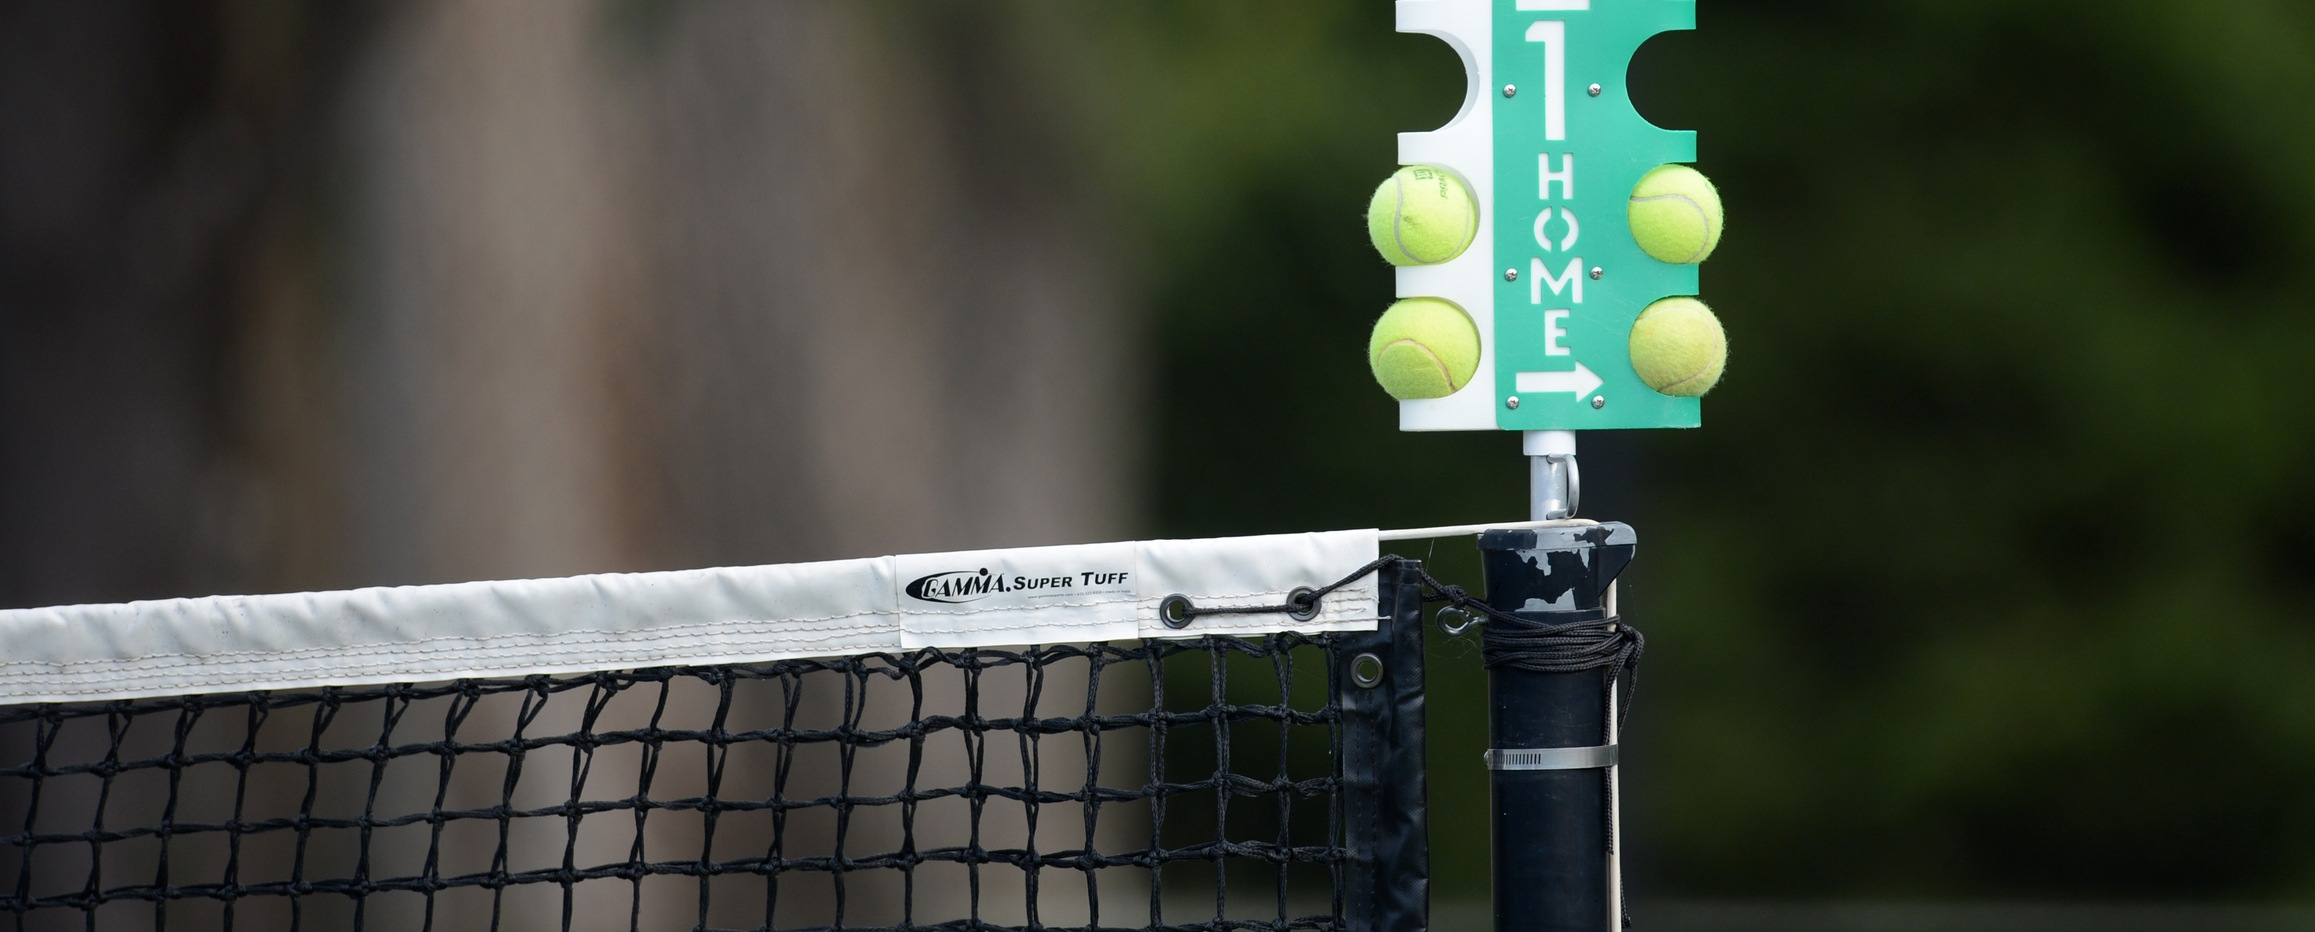 King advances on final day of ITA Midwest Regional